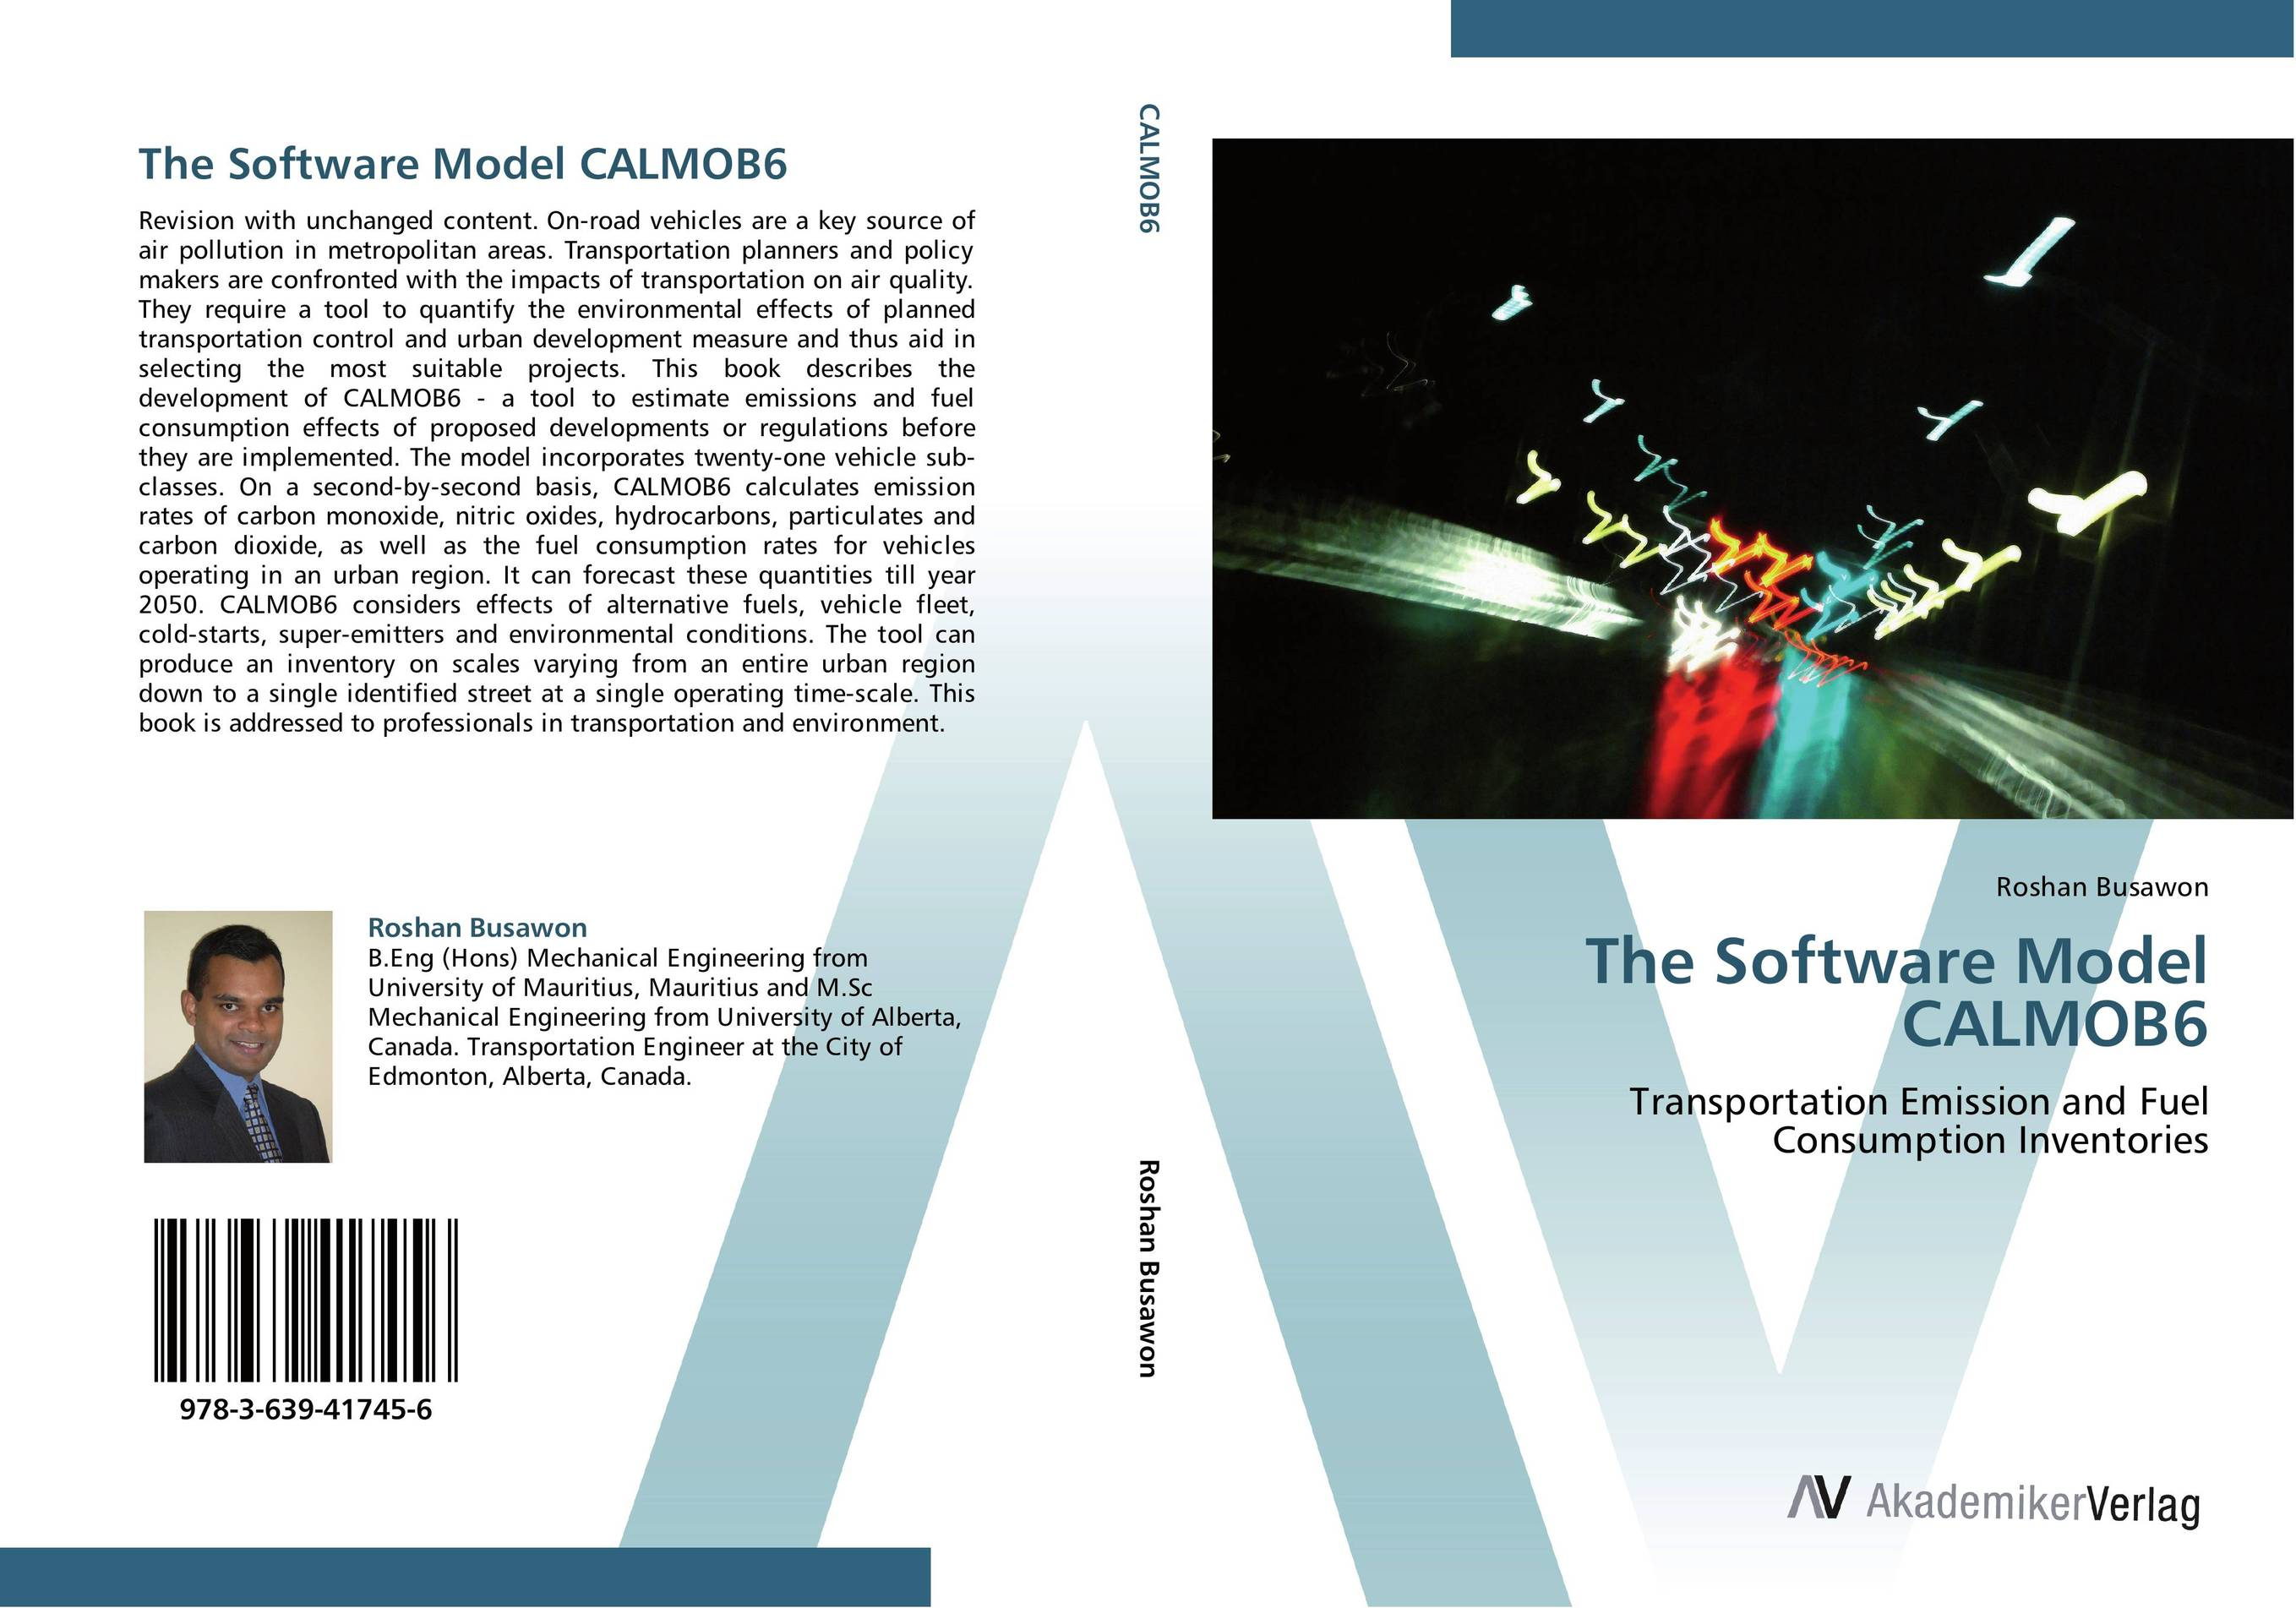 The Software Model CALMOB6 a decision support tool for library book inventory management